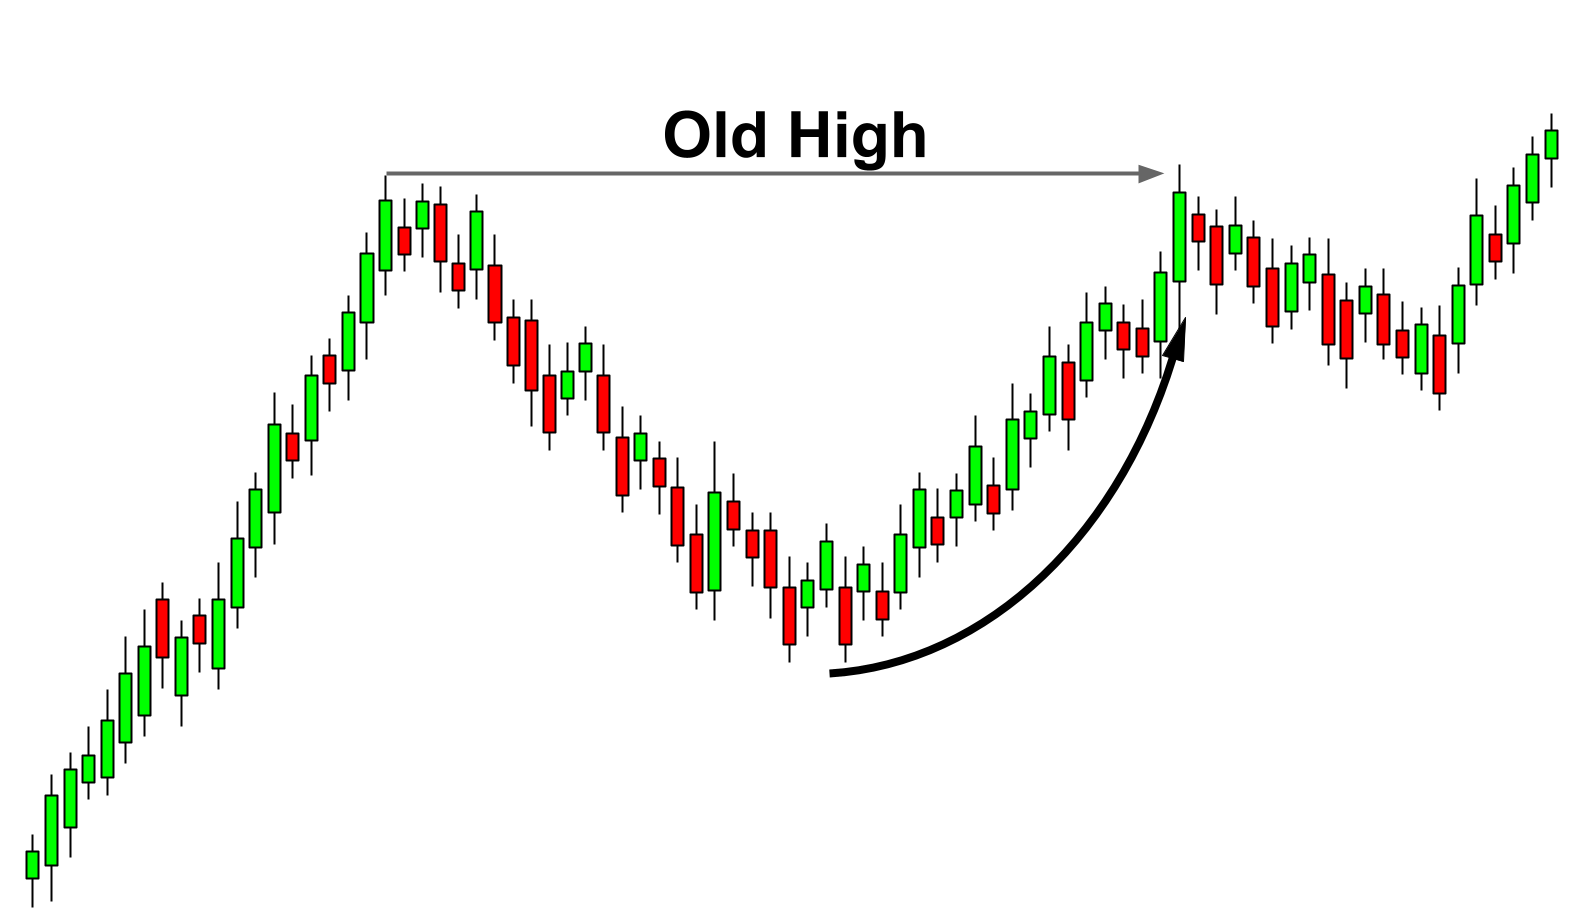 Buyers nervousness to sell, thus, create a curved handle pattern.